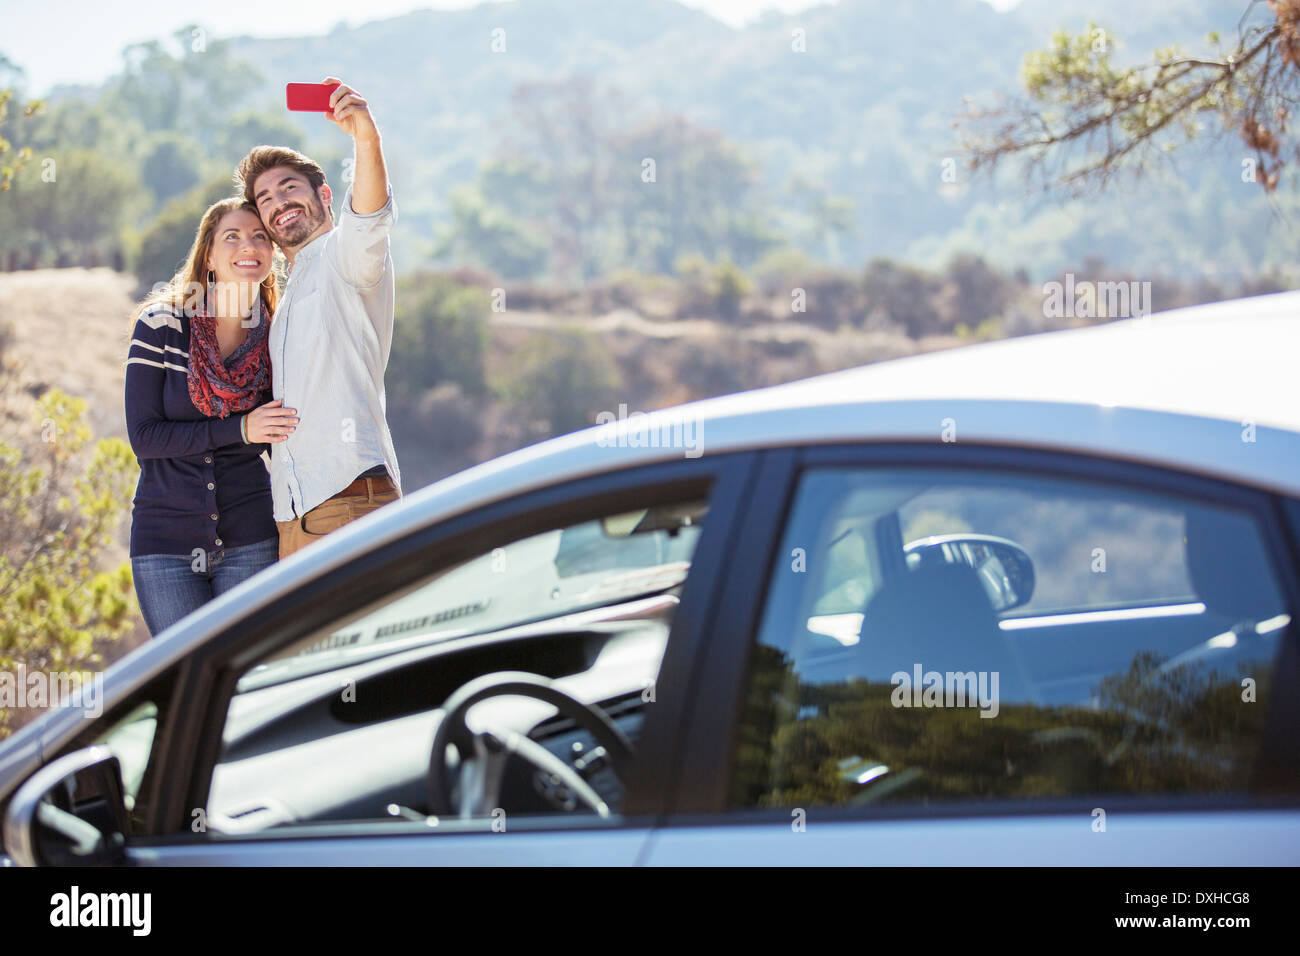 Couple Taking Self Portrait With Cell Phone Outside Car Stock Photo Alamy